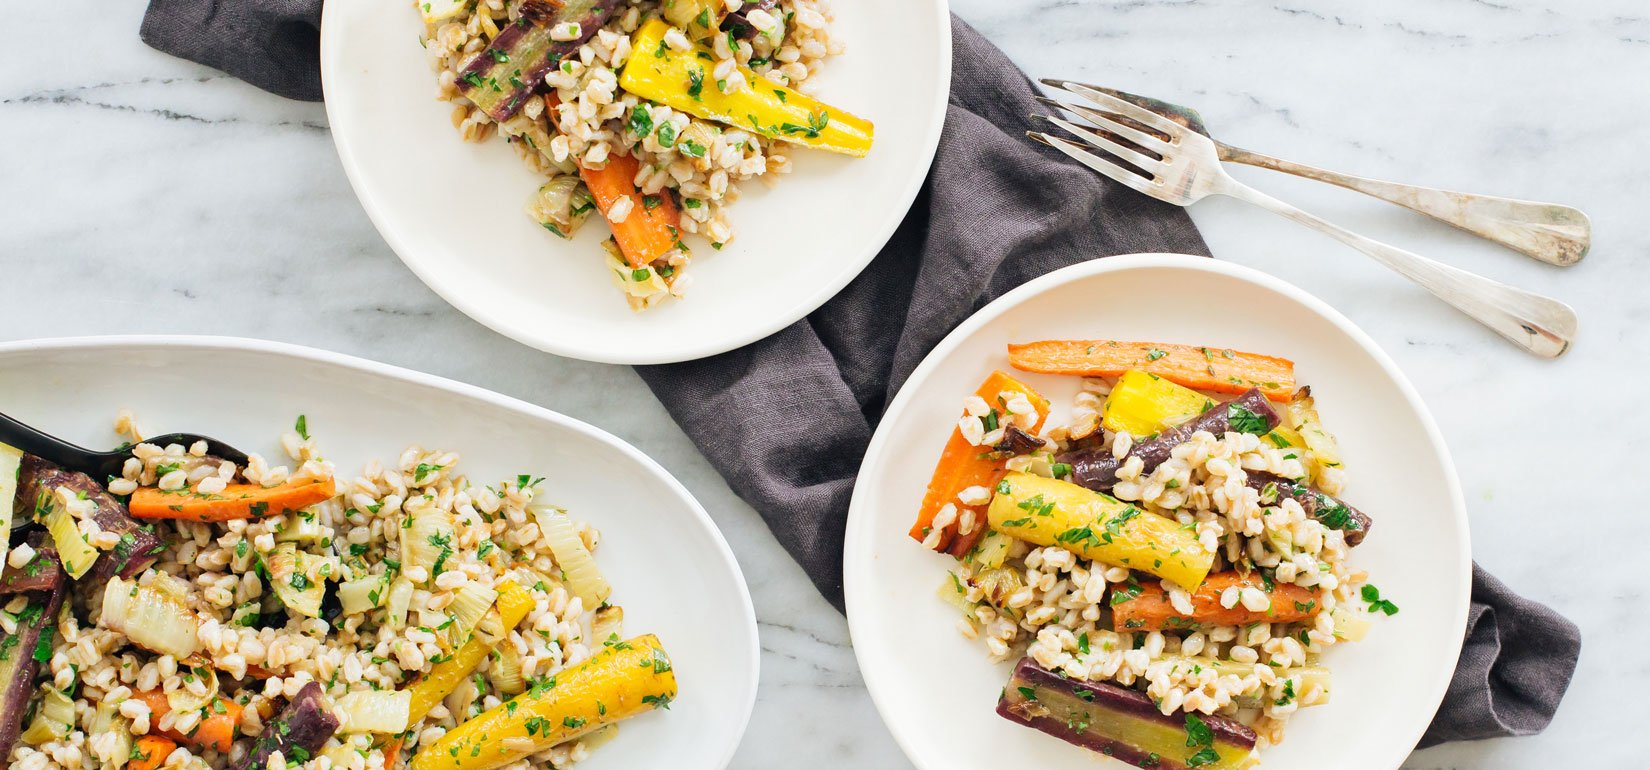 Organic Farro Salad with Thyme-Roasted Carrots and Maple-Ginger Dressing